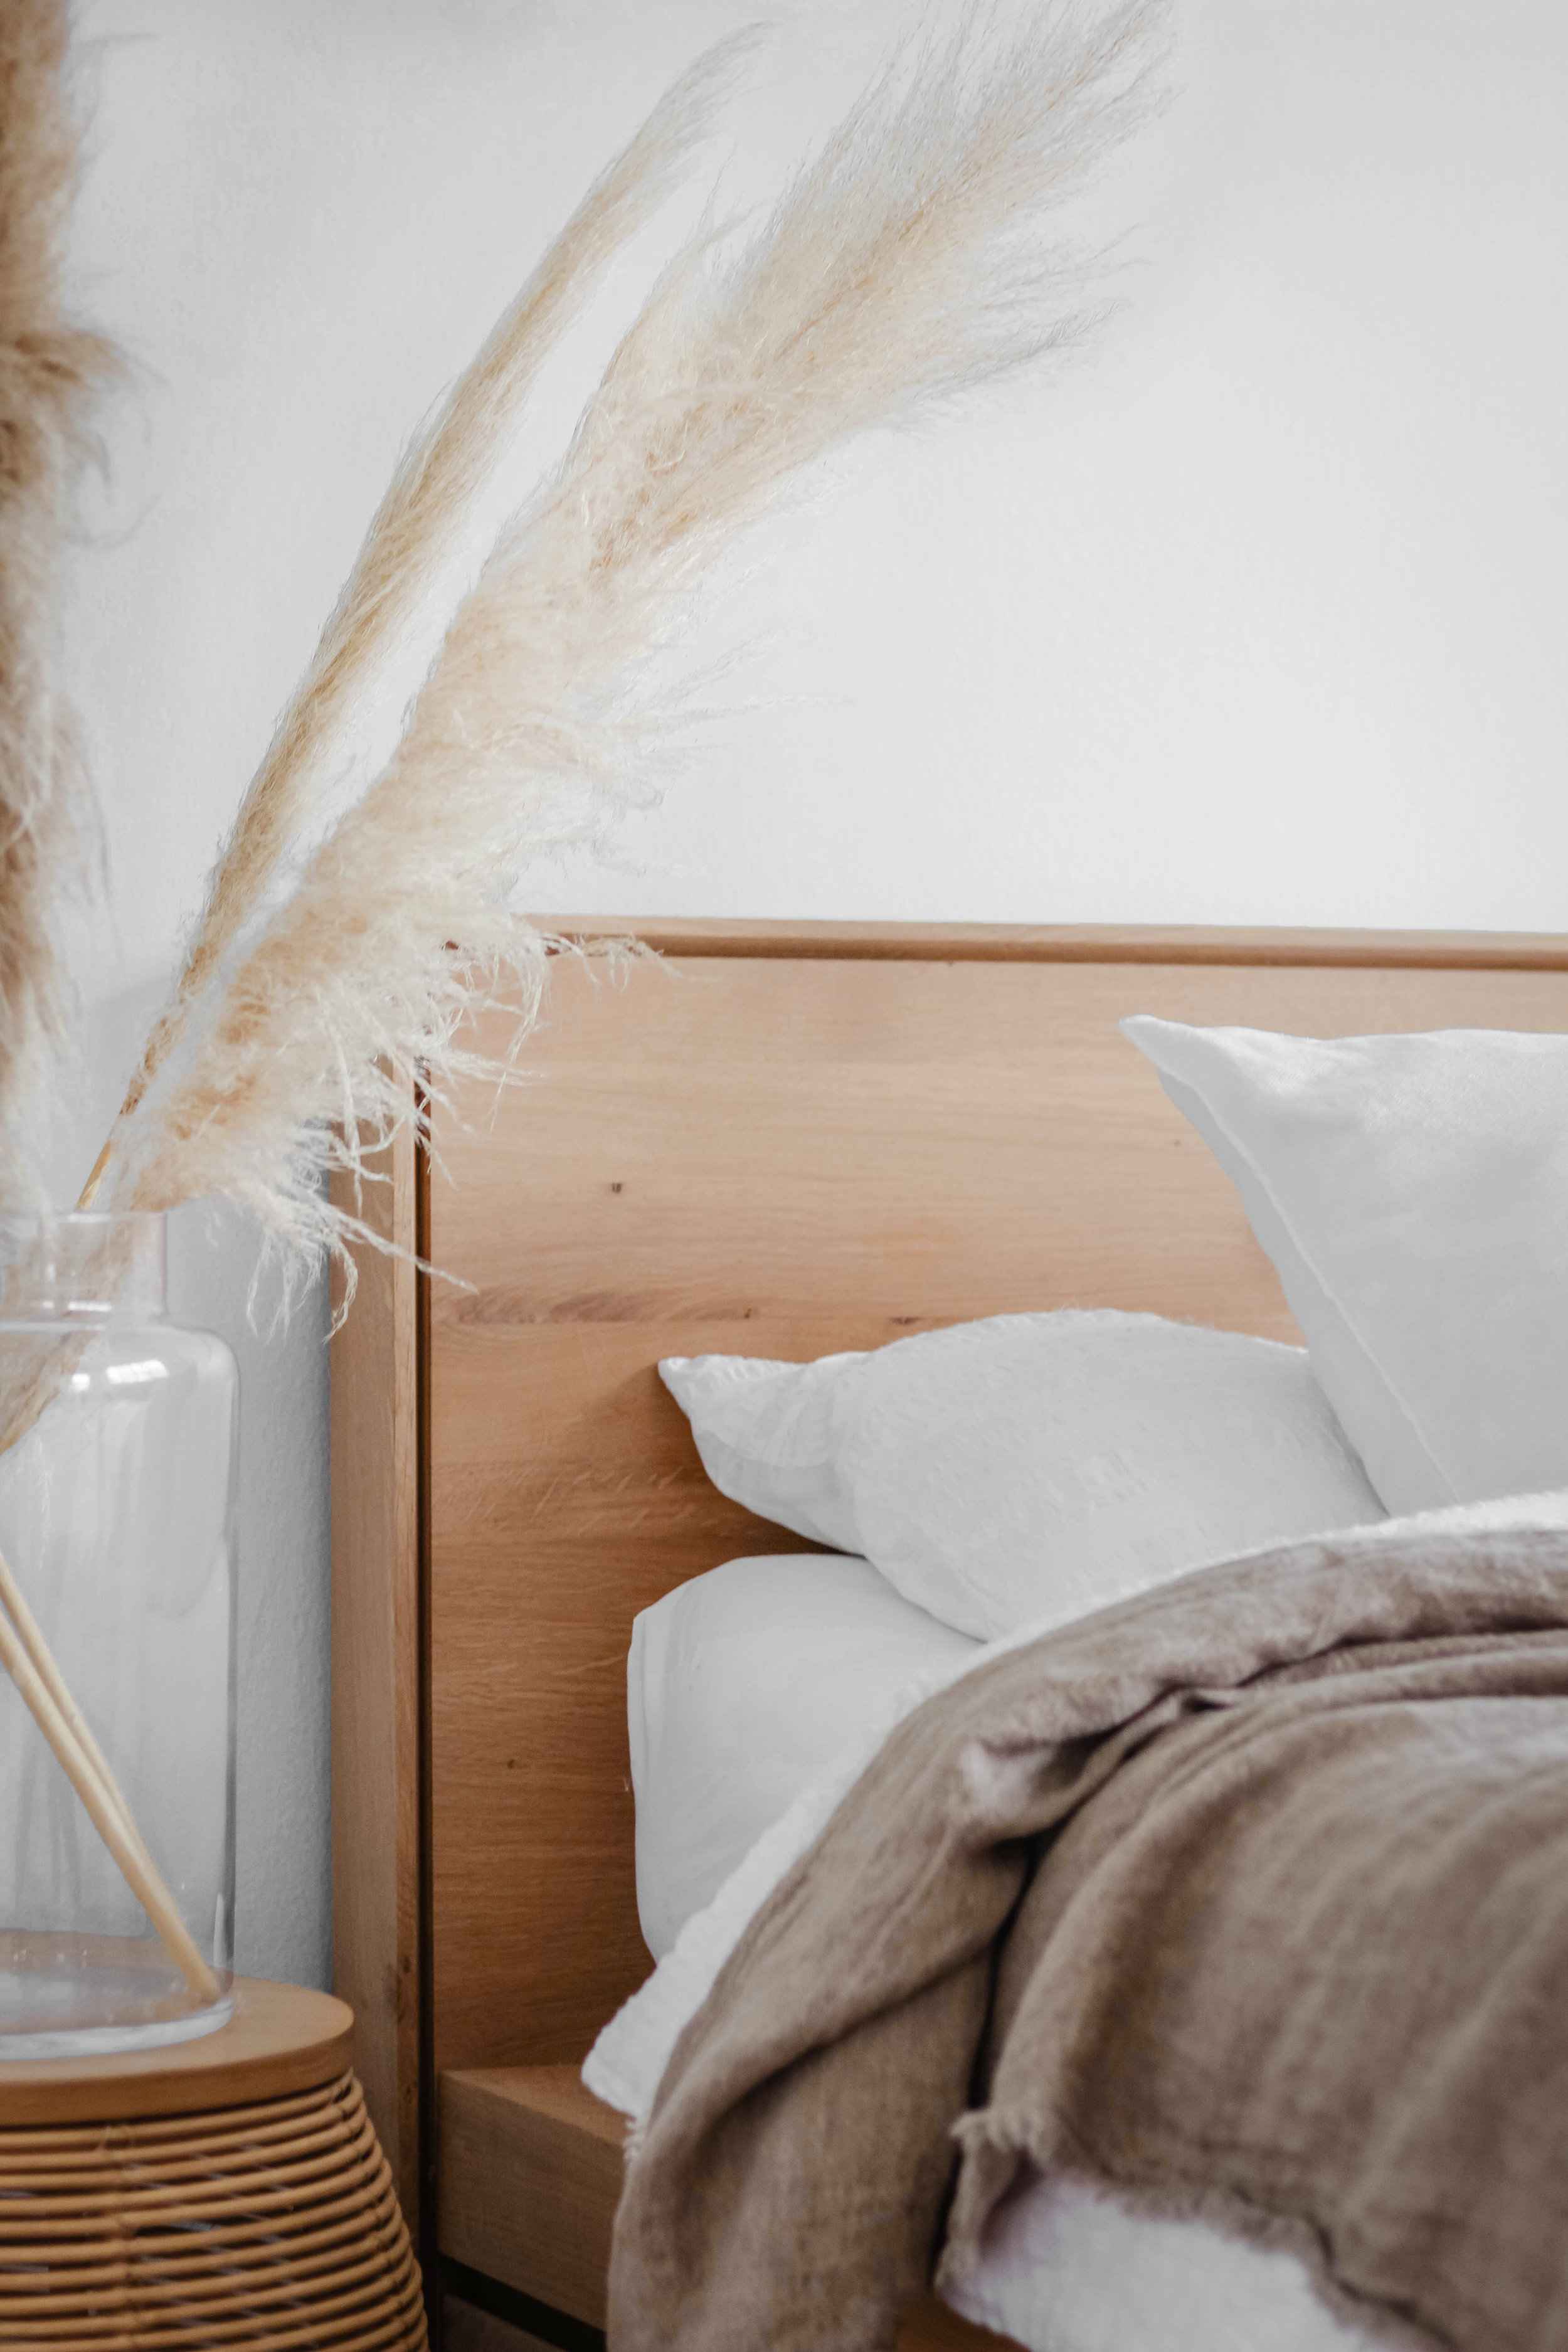 How to style your bedroom 3 ways minimal 3.jpg